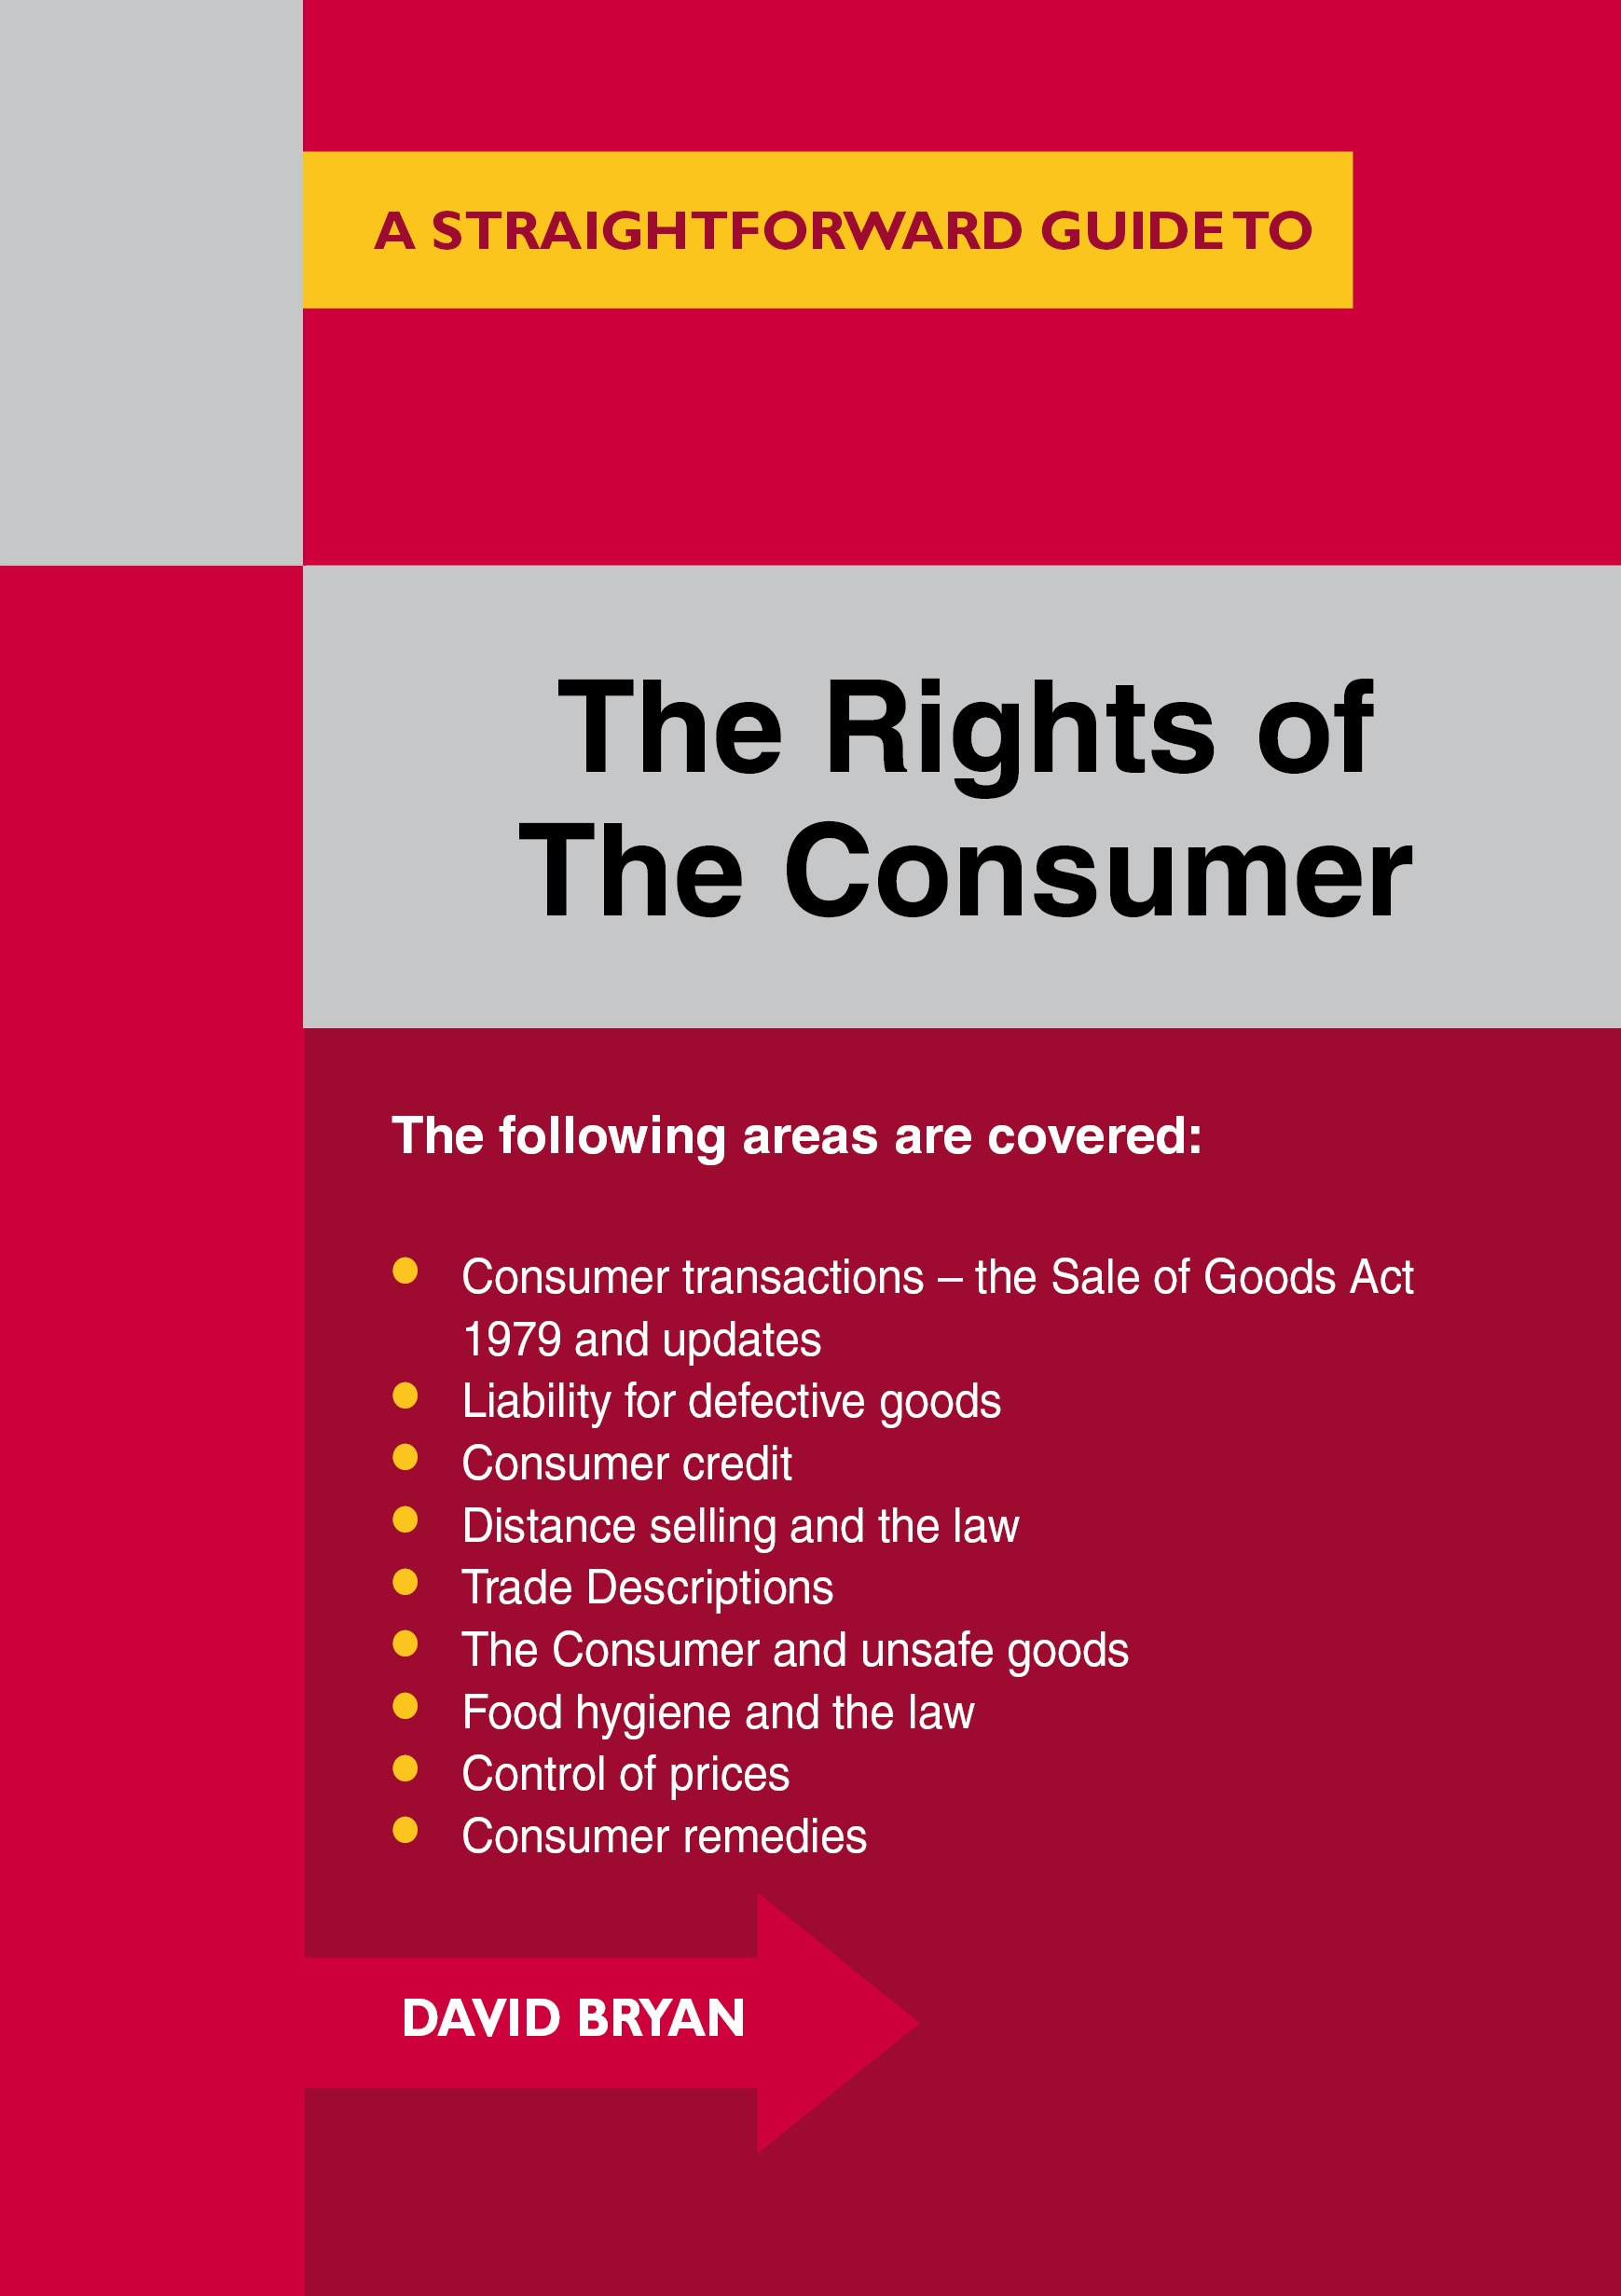 The Rights of the Consumer cover